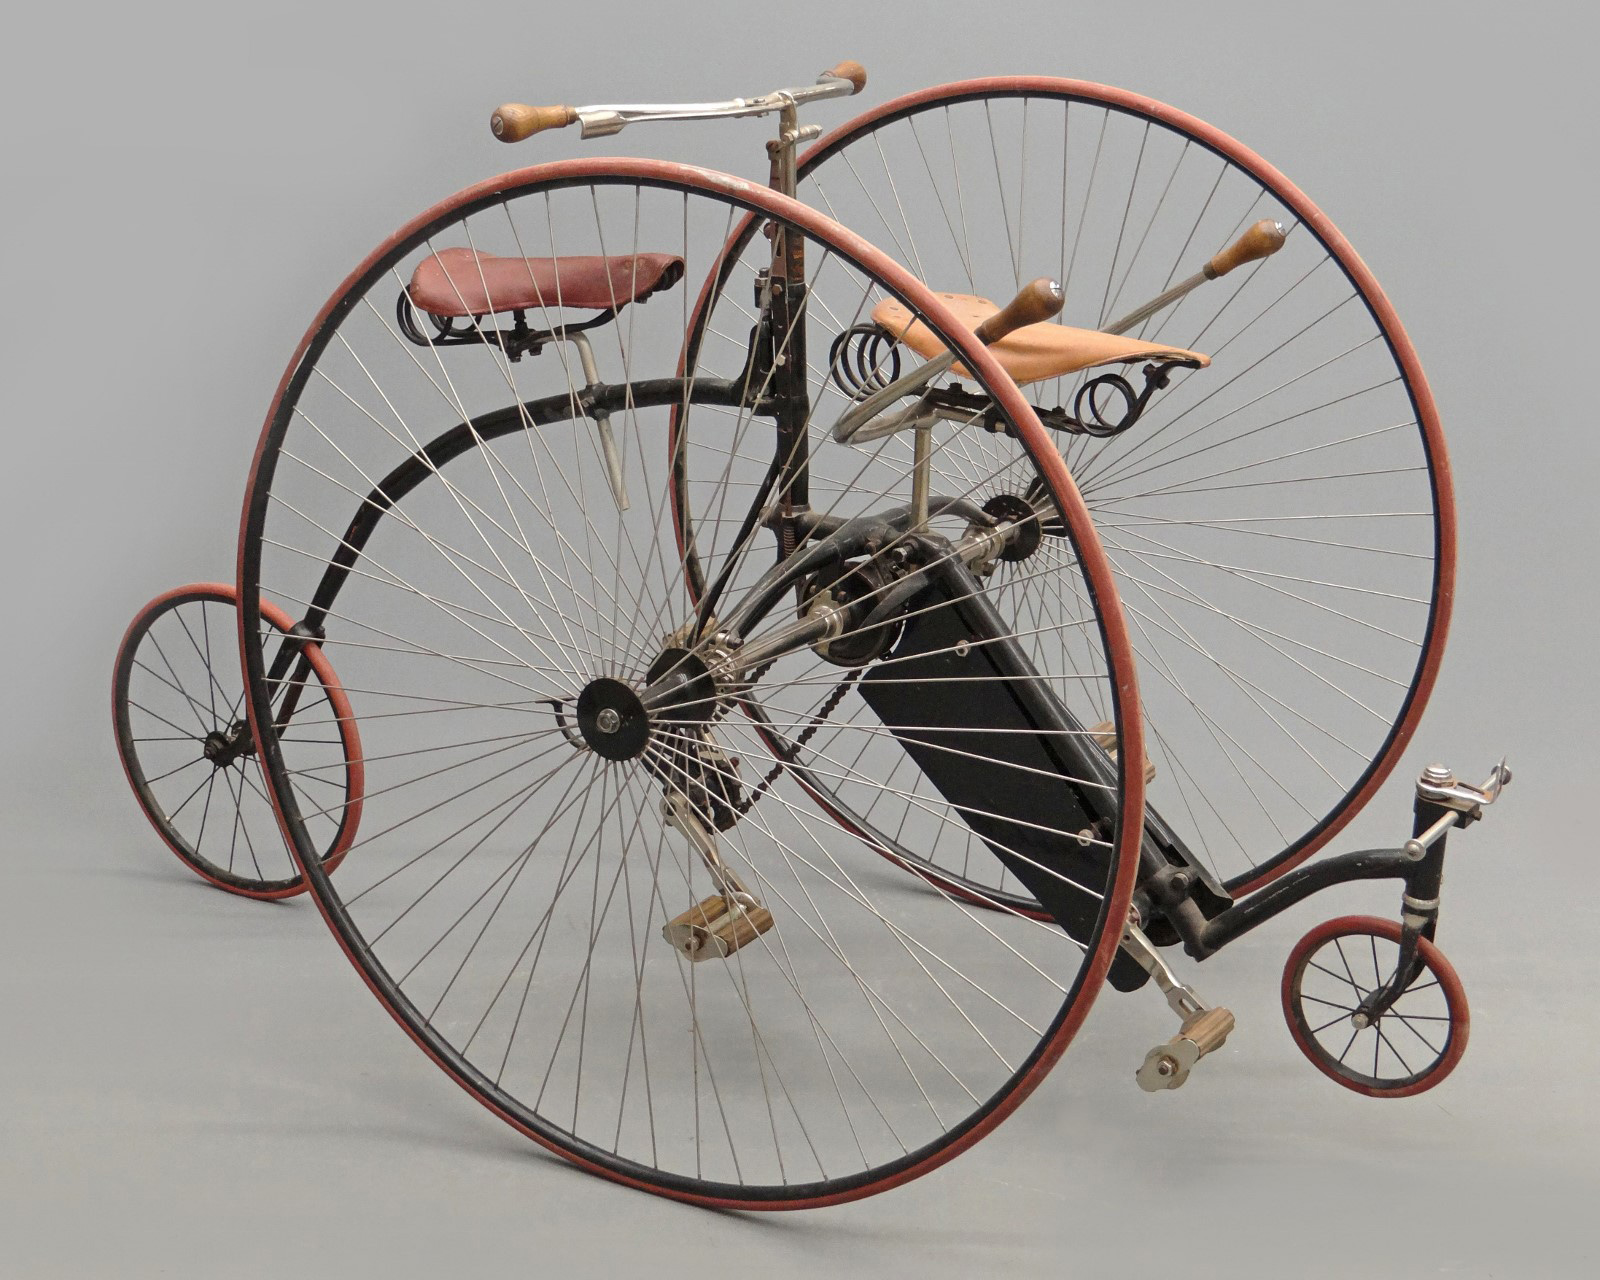 Makers Of Antique Tricycles : Th annual bicycle auction post sale results copake